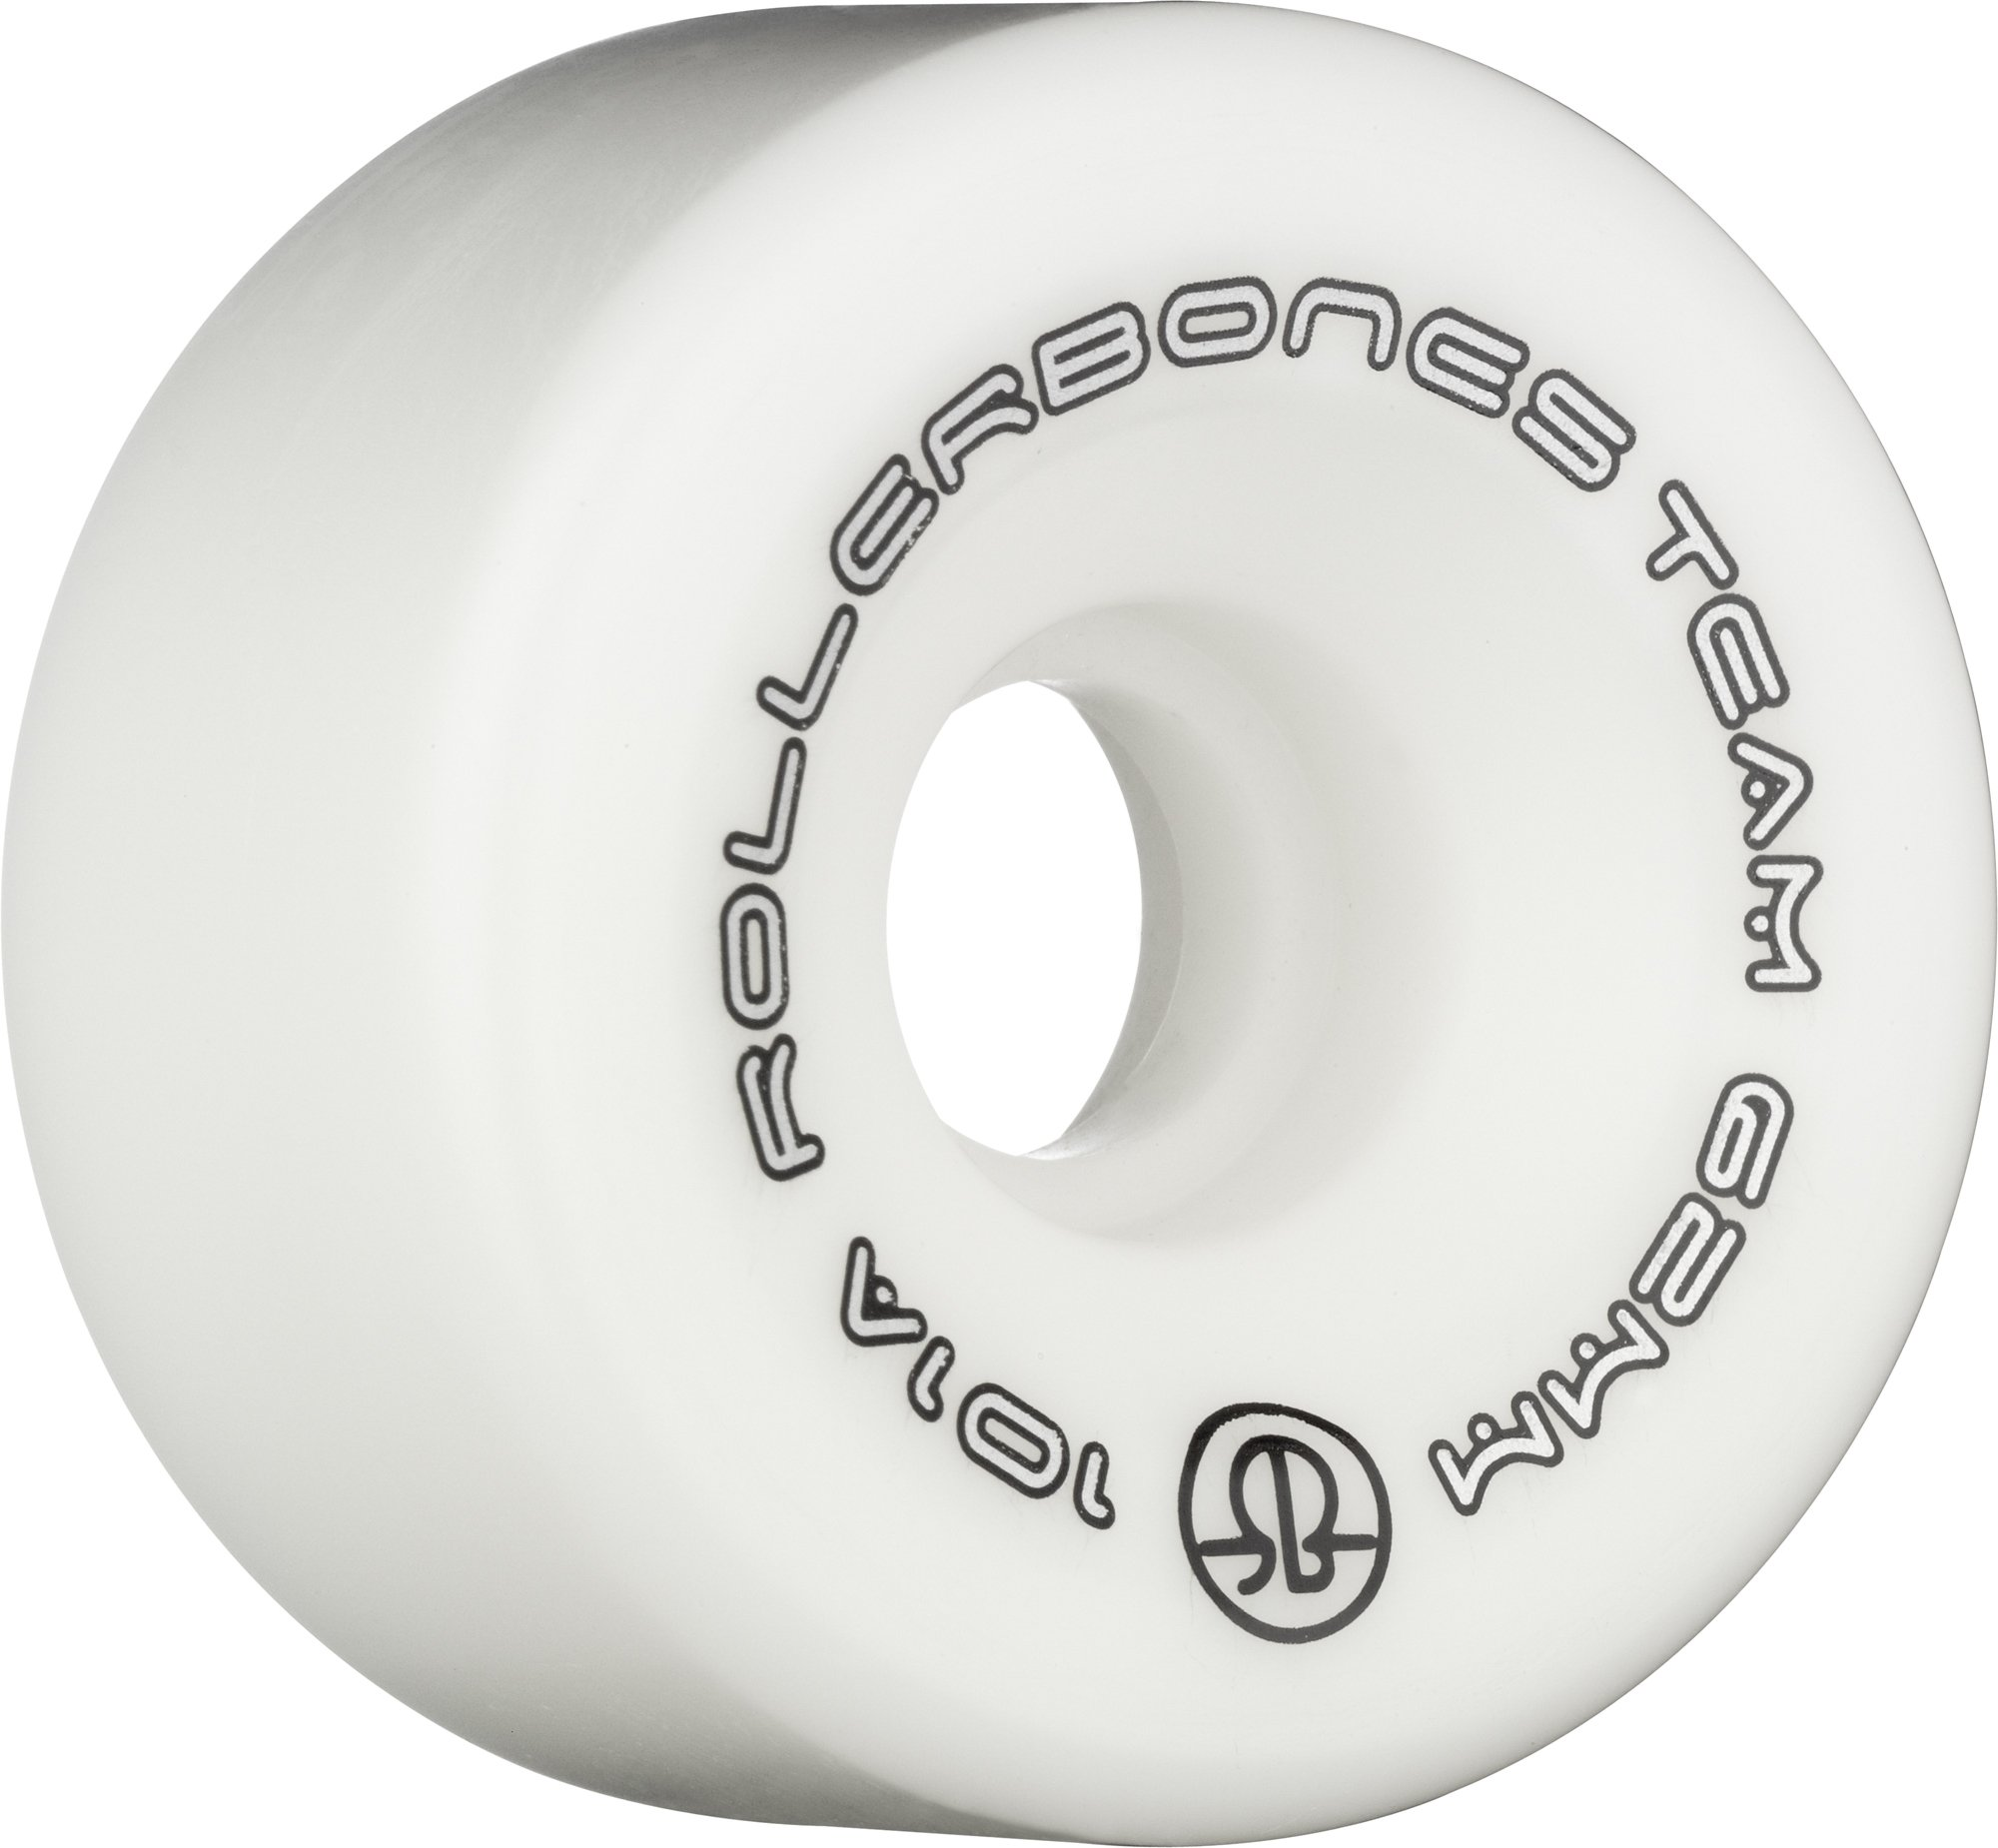 RollerBones Team Logo 101A Recreational Roller Skate Wheels (Set of 8), White, 57mm by RollerBones